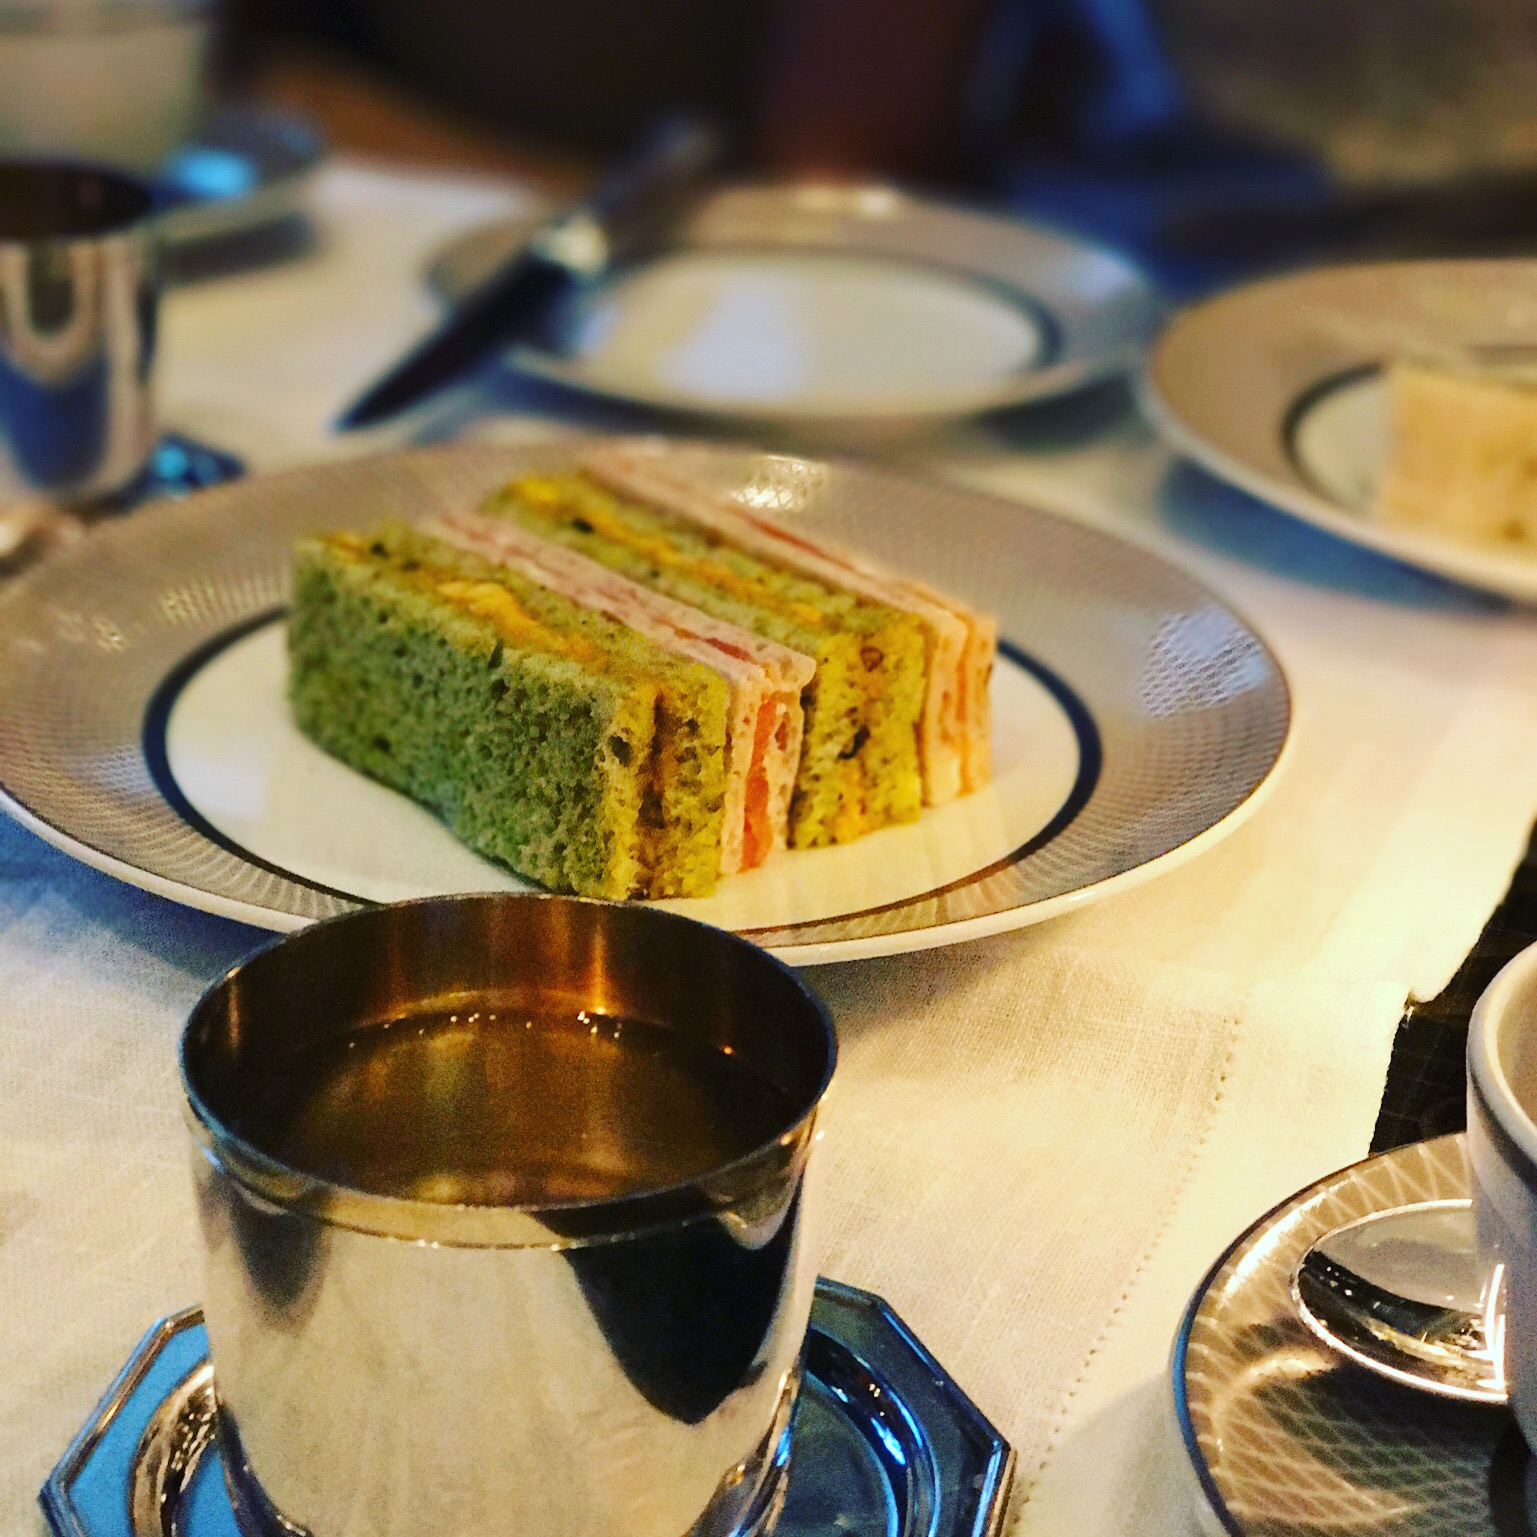 Title: Afternoon tea in The Mirror Room at Rosewood London  Byline:We felt like we were stepping into the set of a James Bond movie when visiting Rosewood London's famous Mirror Room for High Tea Society.  Link: https://highteasociety.com/reviews/afternoon-tea-mirror-room-rosewood-london/